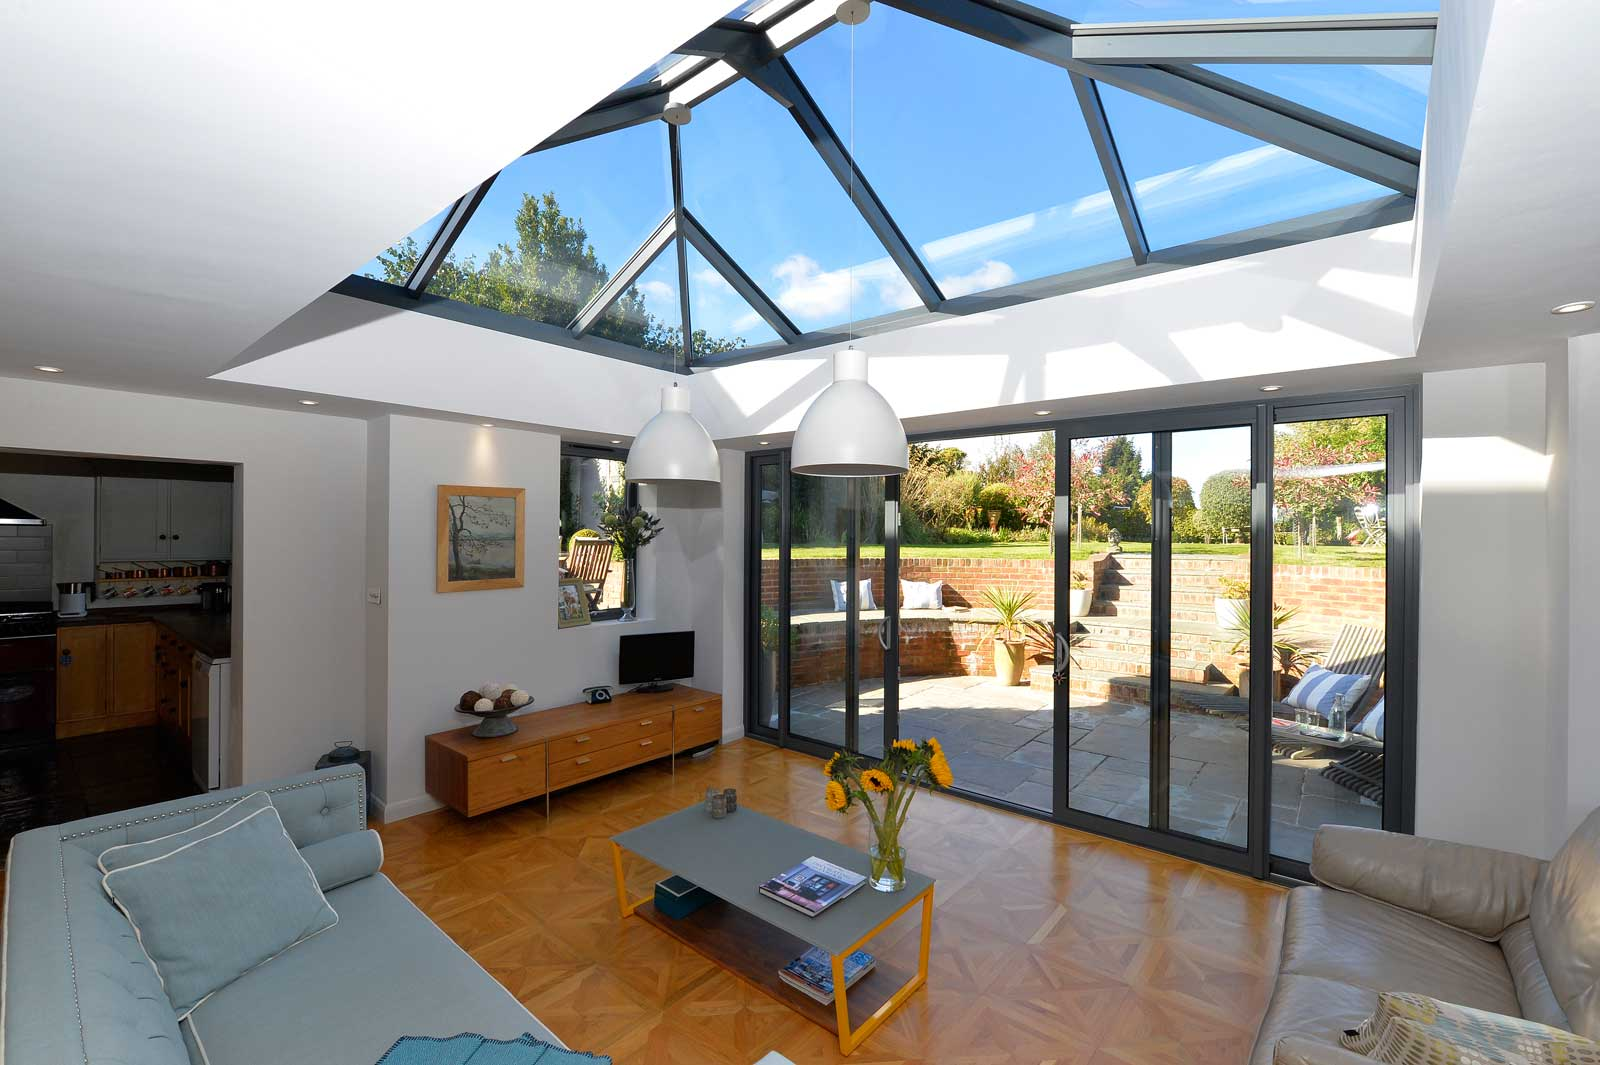 worcester garden room costs